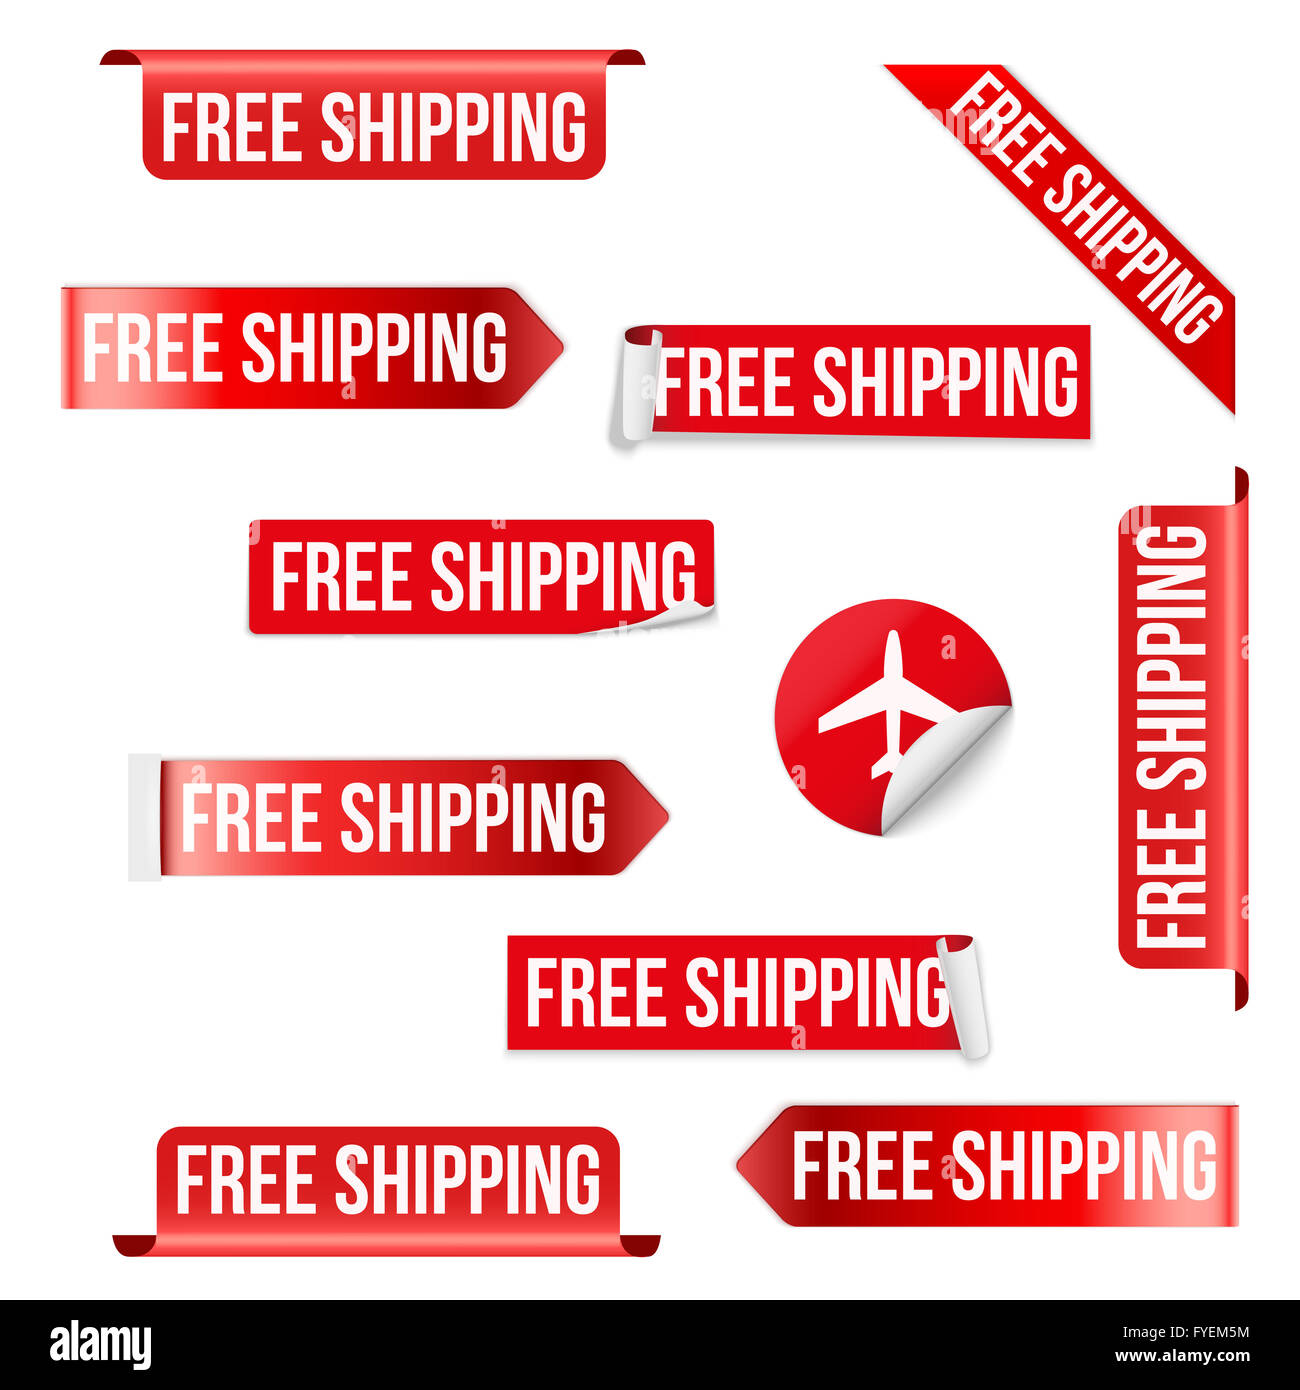 free shipping red label design stock photo 102970720 alamy